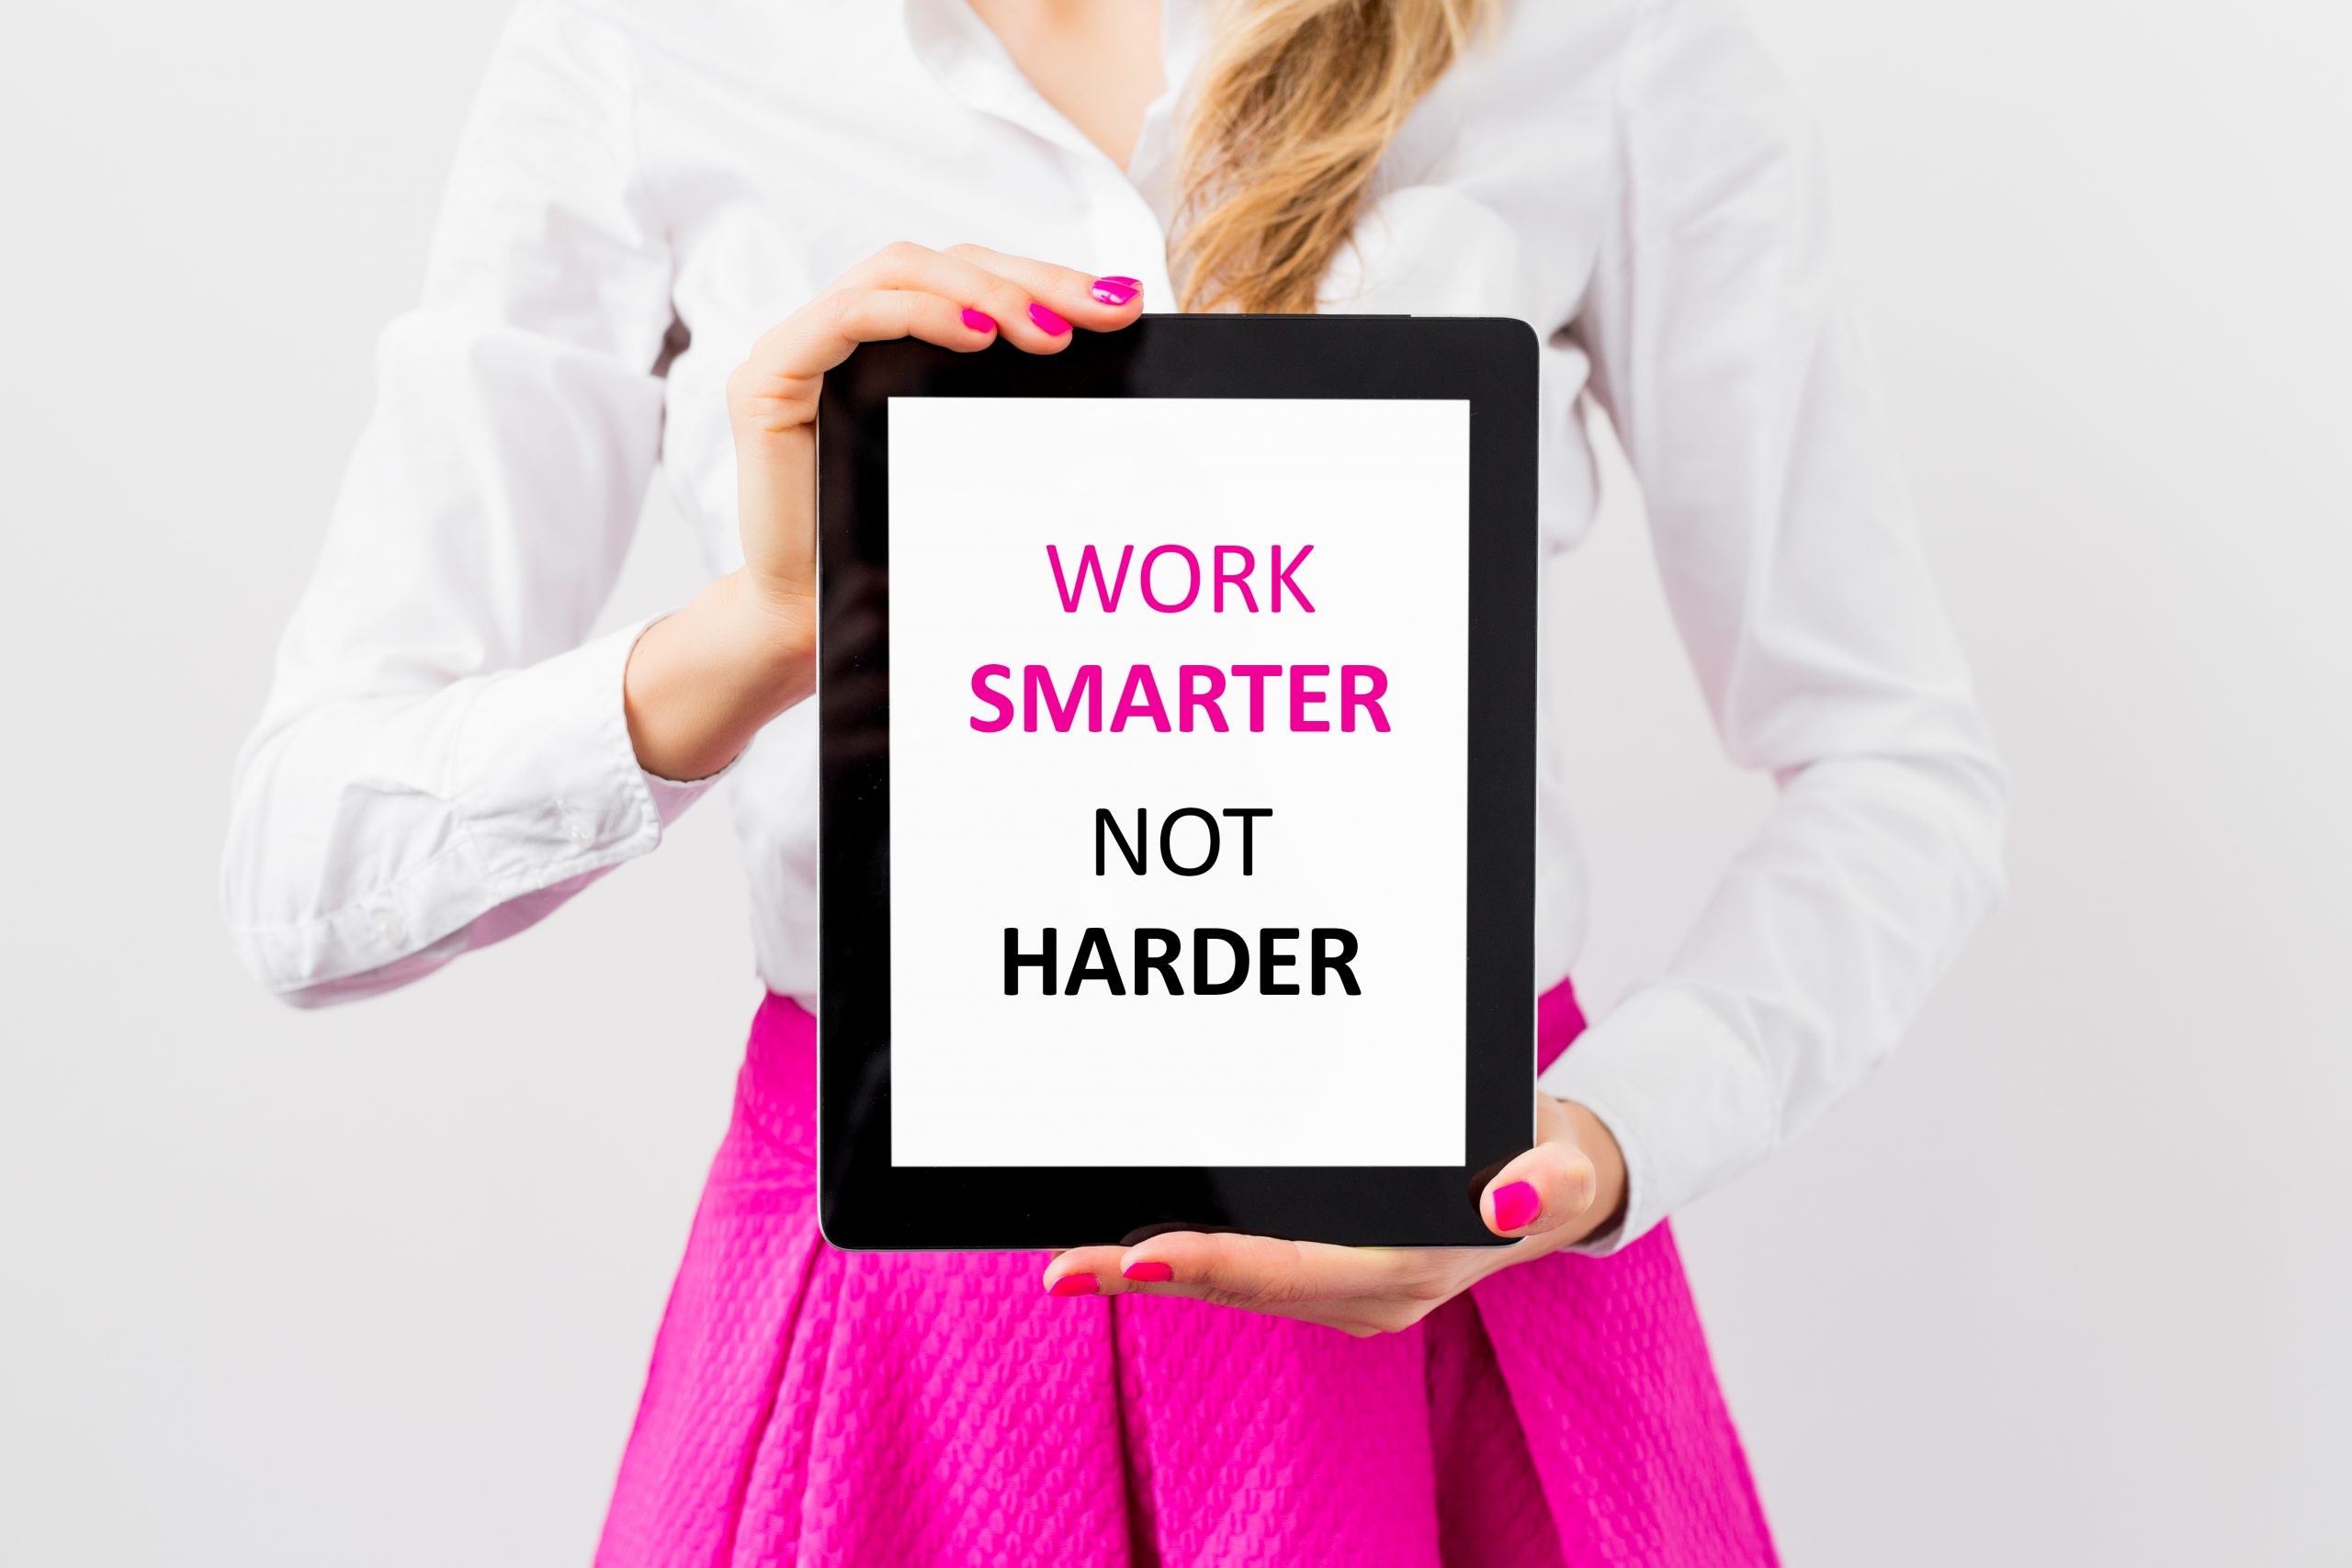 Image is of a woman holding a ablet saying work smarter not harder